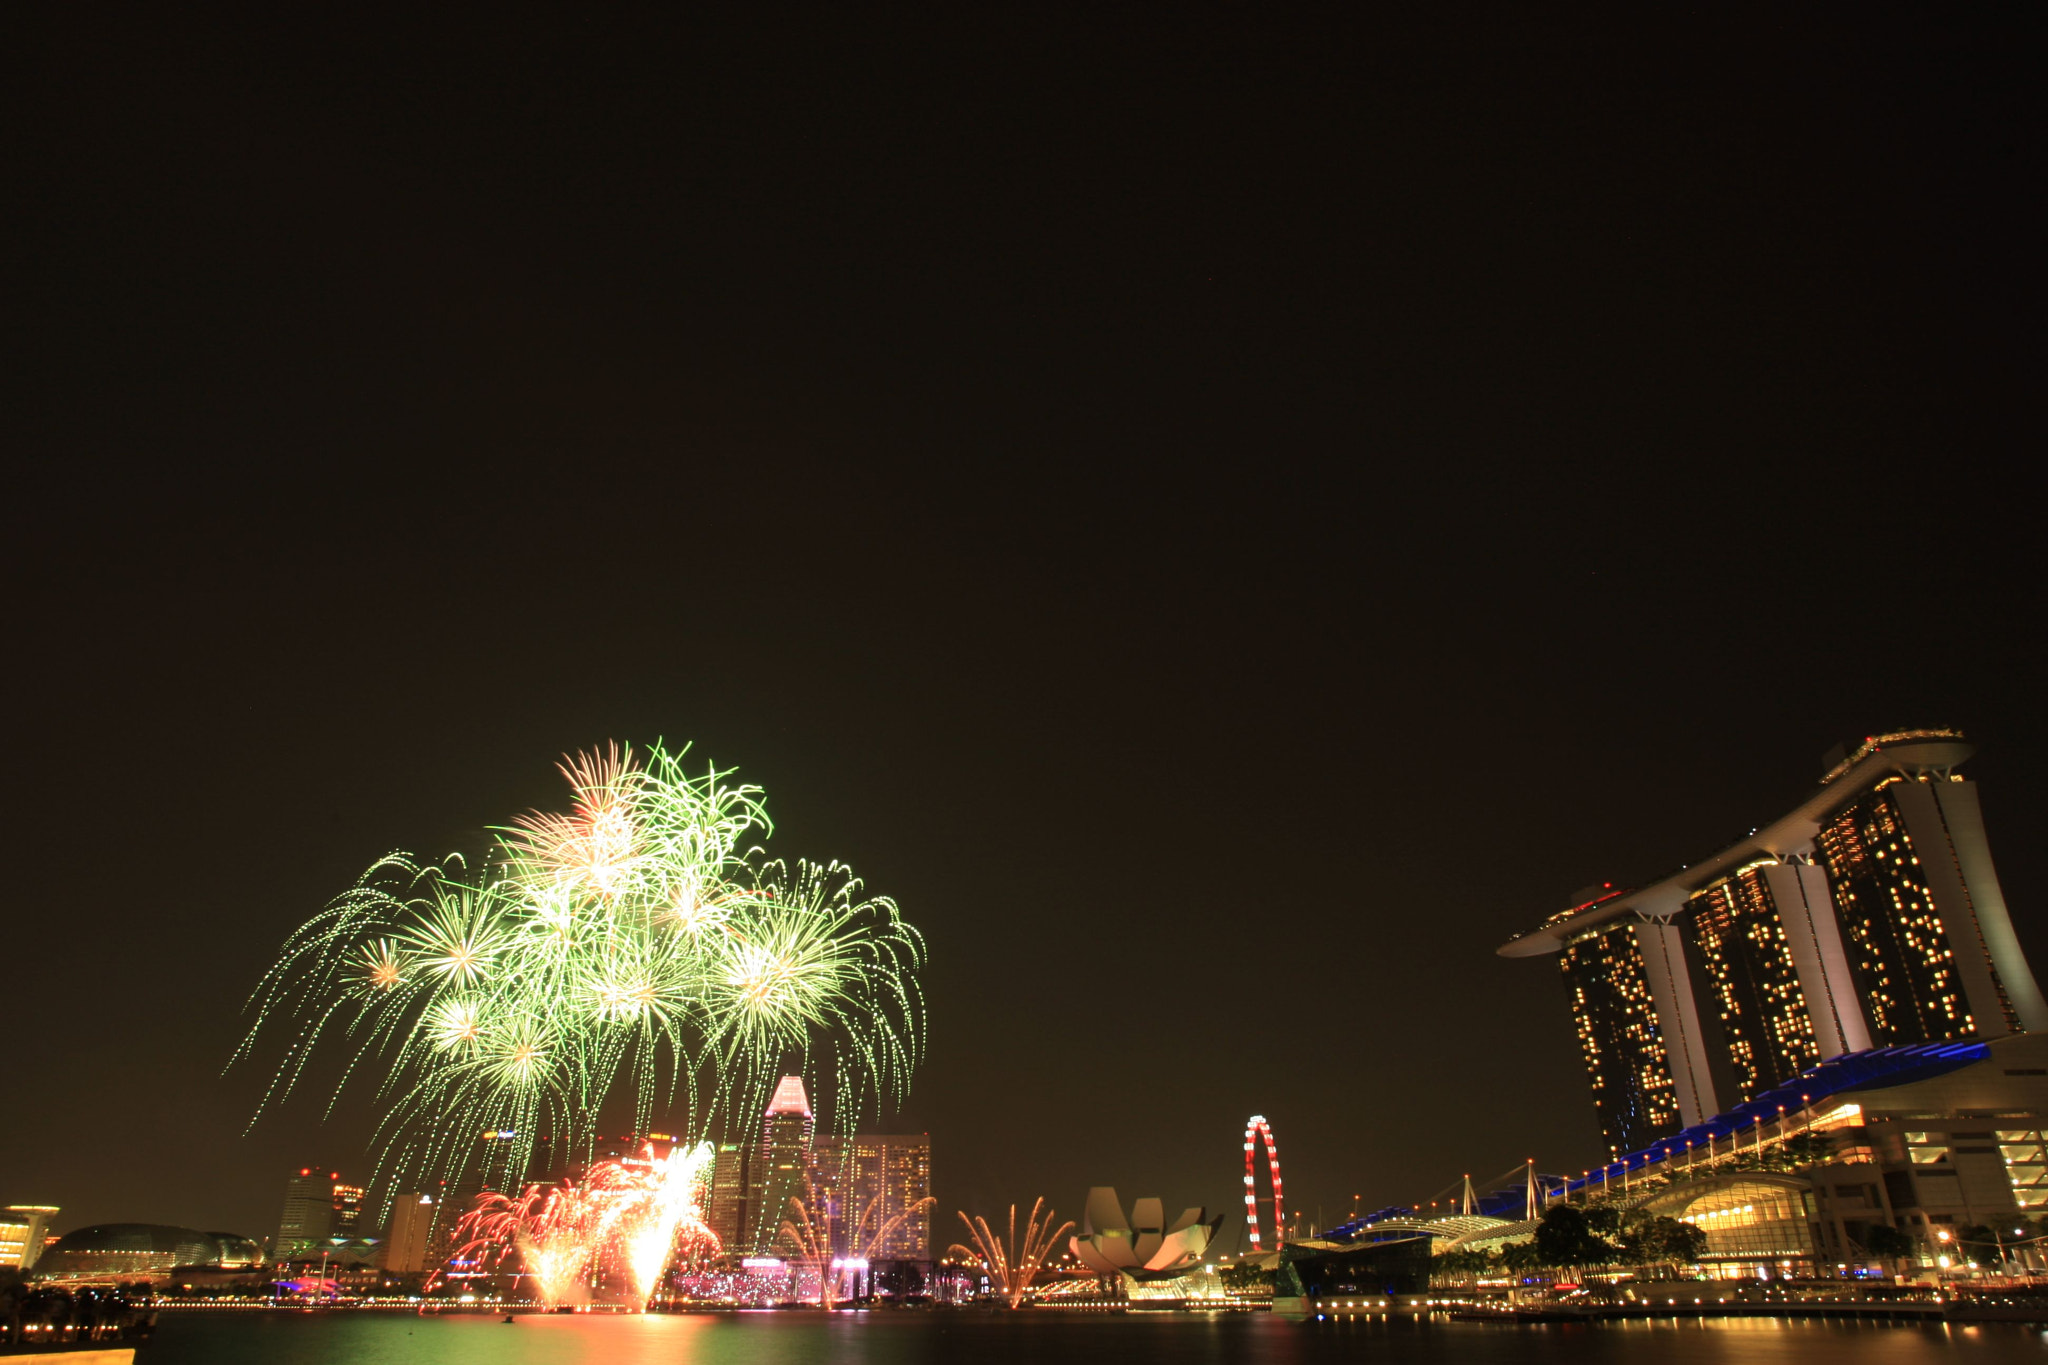 Photograph NDP 2012 Preview Fireworks! by GengHui Tan on 500px